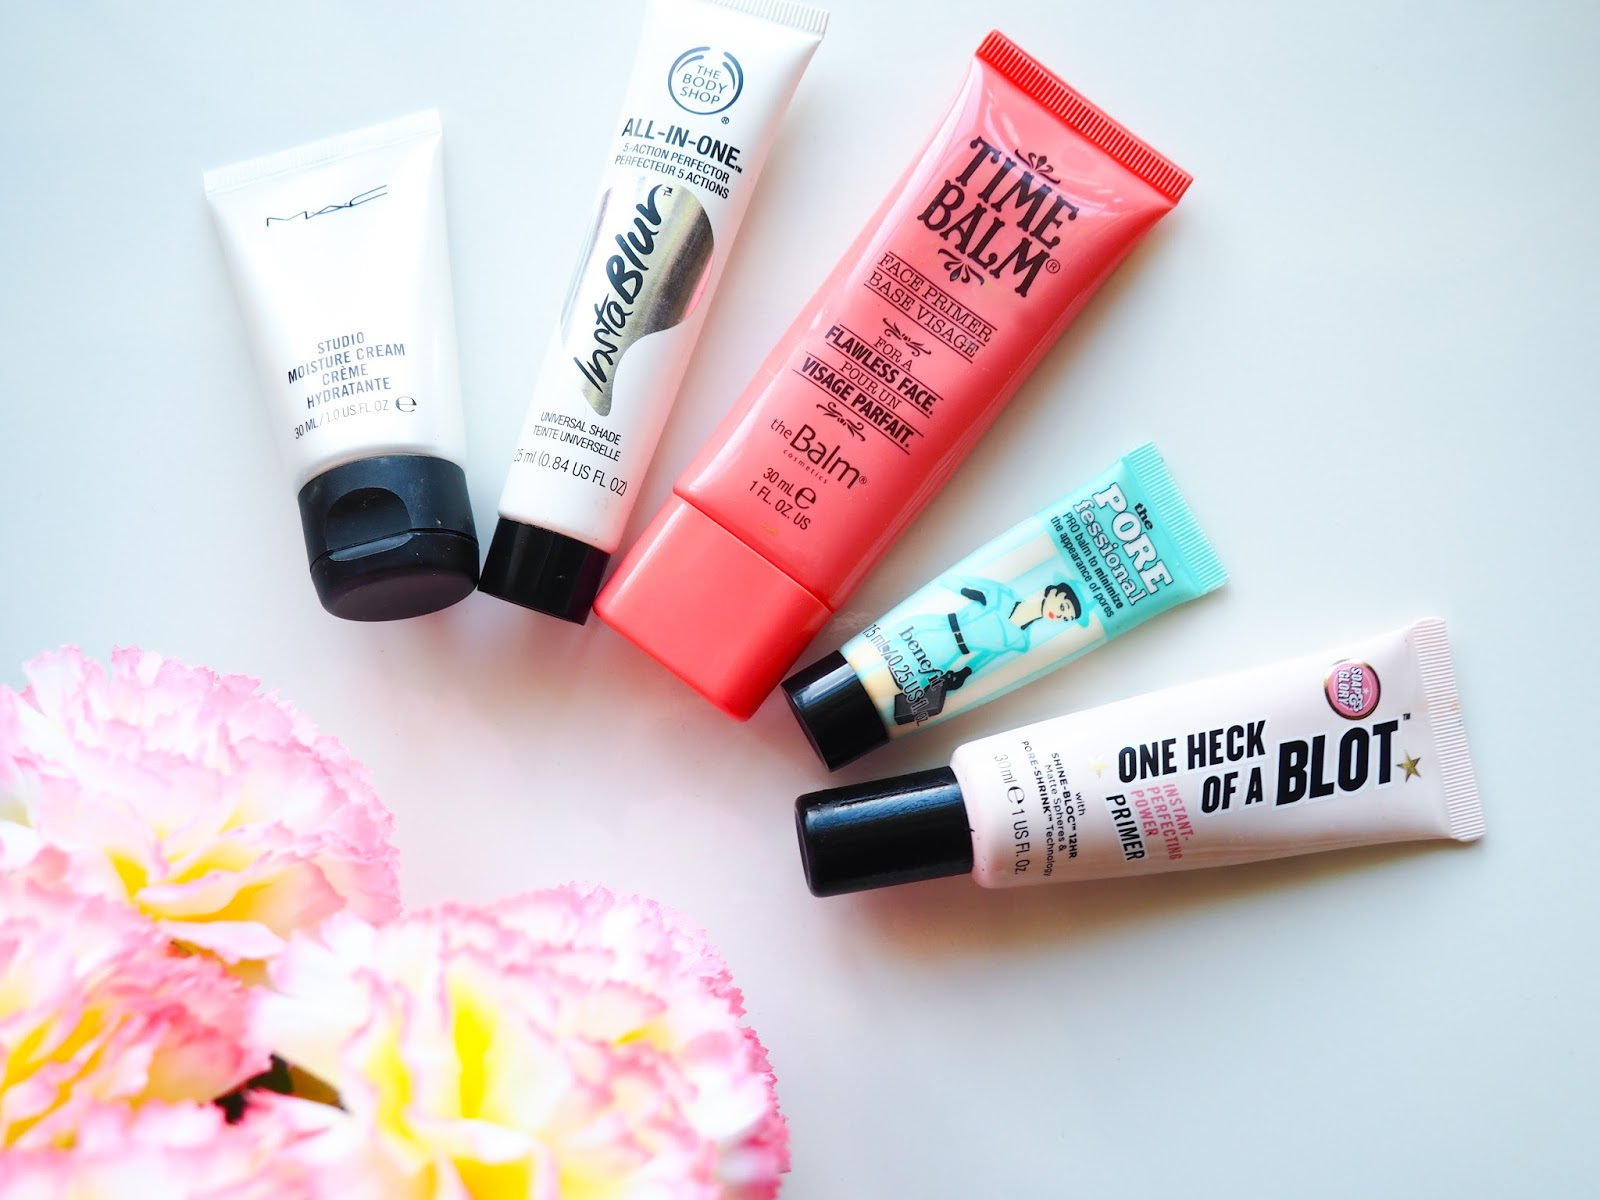 It's Cultured Primers Benefit Cosmetics, The Body Shop, The Balm and Mac